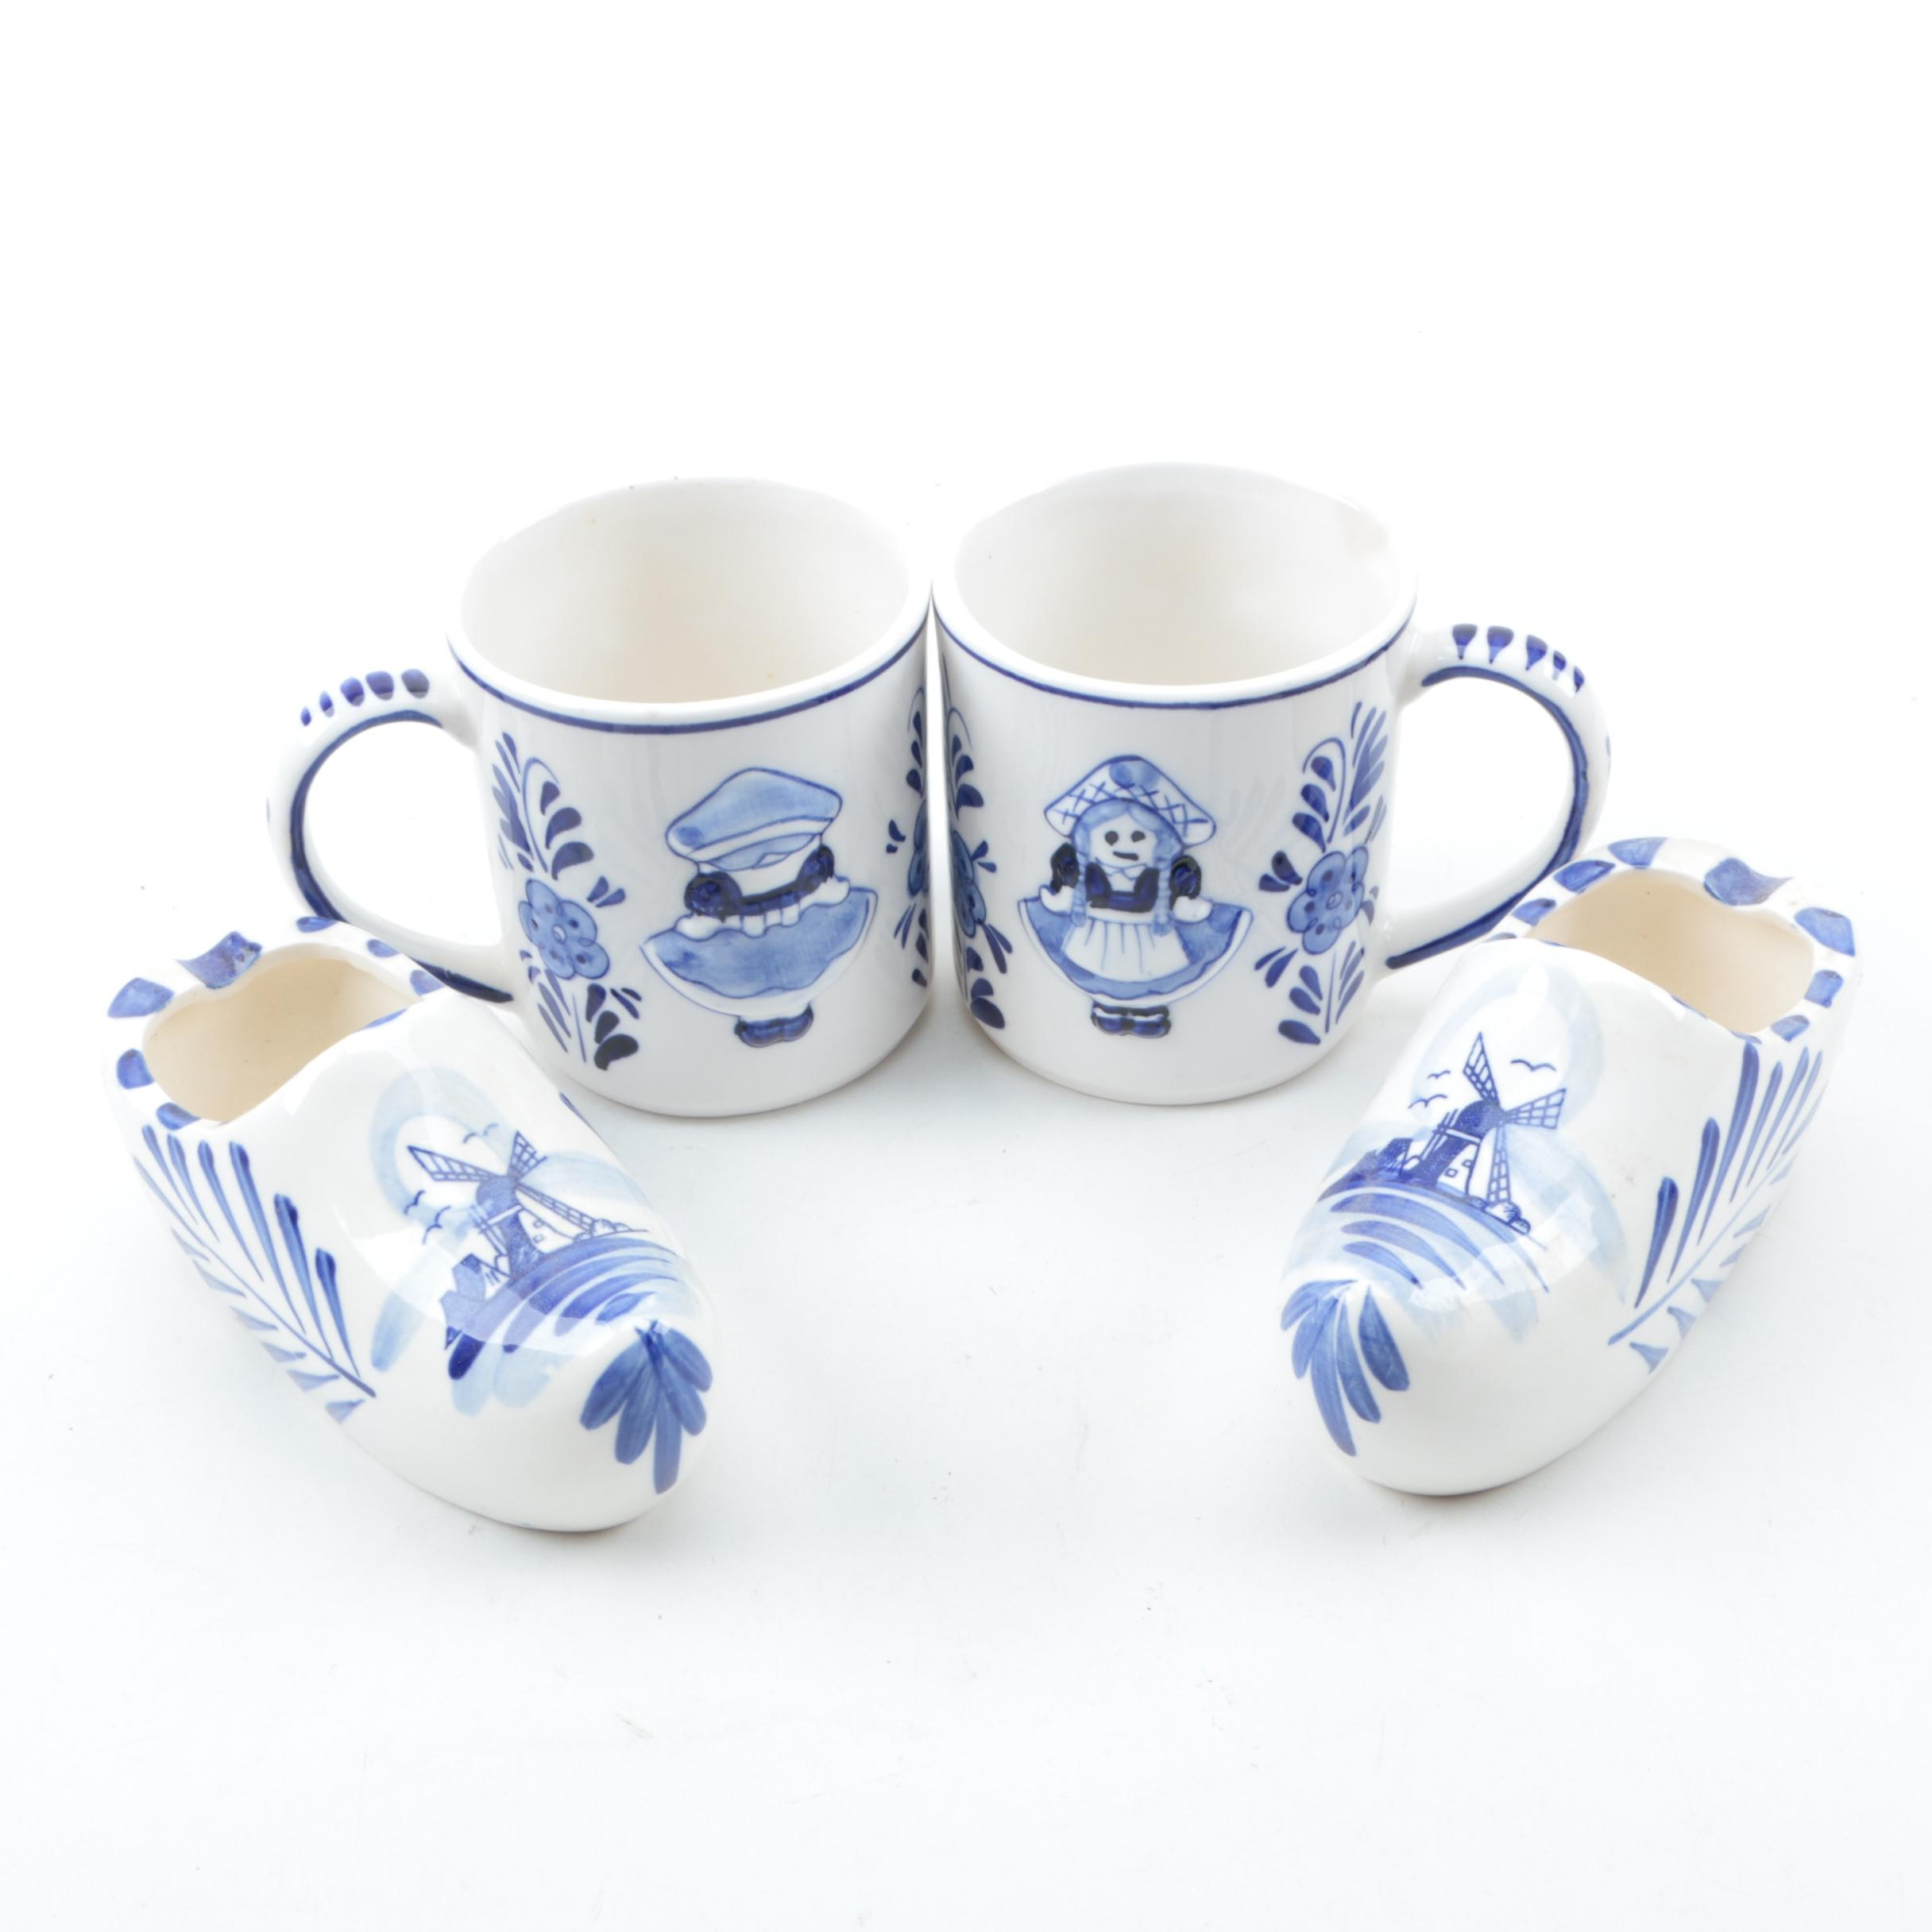 Vintage Delft Style Mugs and Ash Receiver Shoes